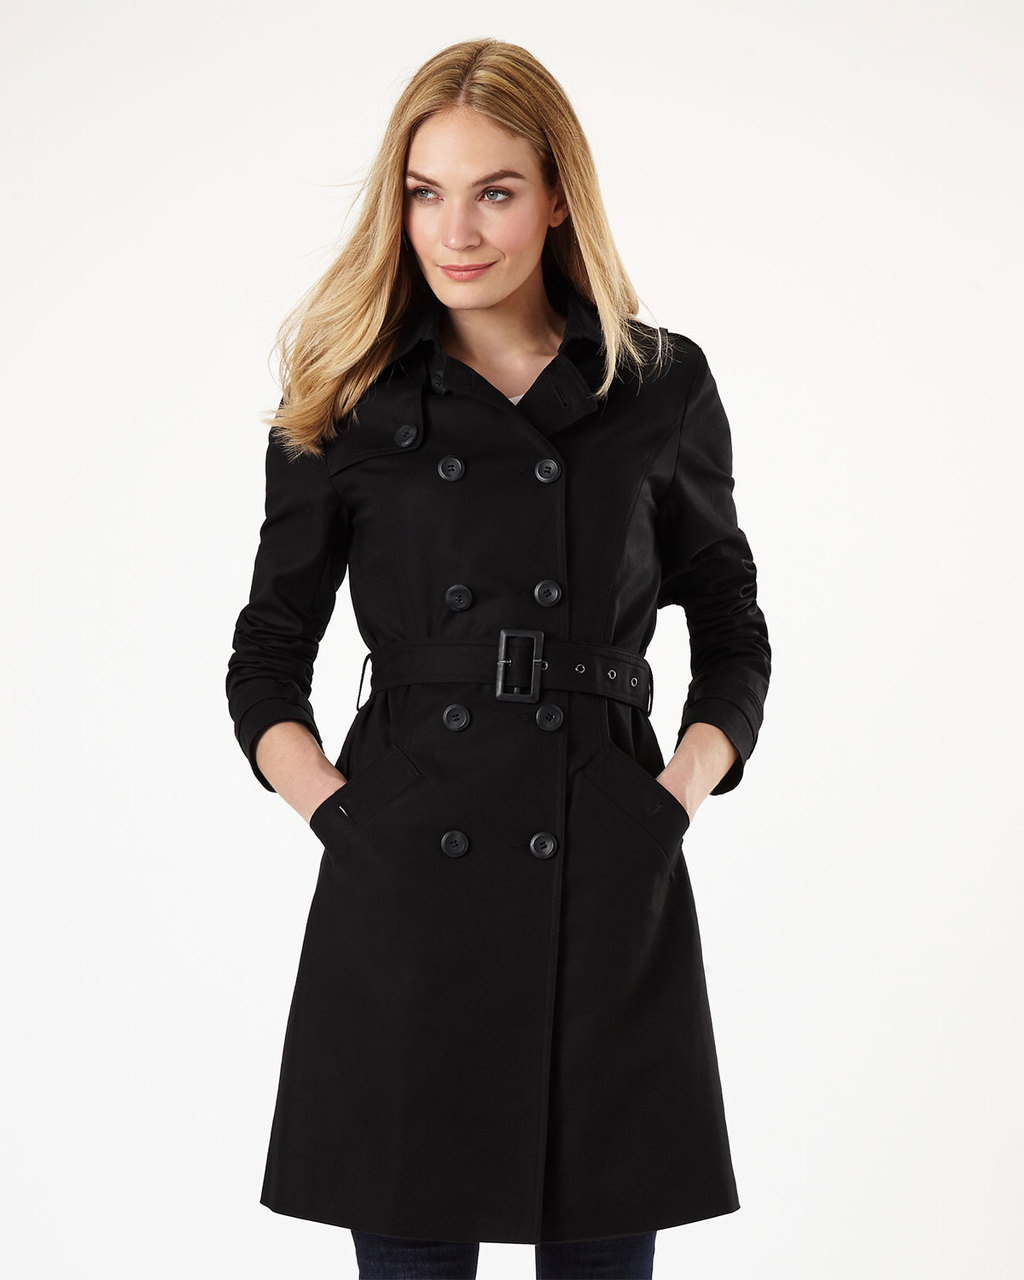 Tabatha Trench Coat - pattern: plain; style: trench coat; length: on the knee; collar: standard lapel/rever collar; predominant colour: black; occasions: casual; fit: tailored/fitted; fibres: cotton - stretch; waist detail: belted waist/tie at waist/drawstring; sleeve length: long sleeve; sleeve style: standard; texture group: technical outdoor fabrics; collar break: medium; pattern type: fabric; season: s/s 2016; wardrobe: basic